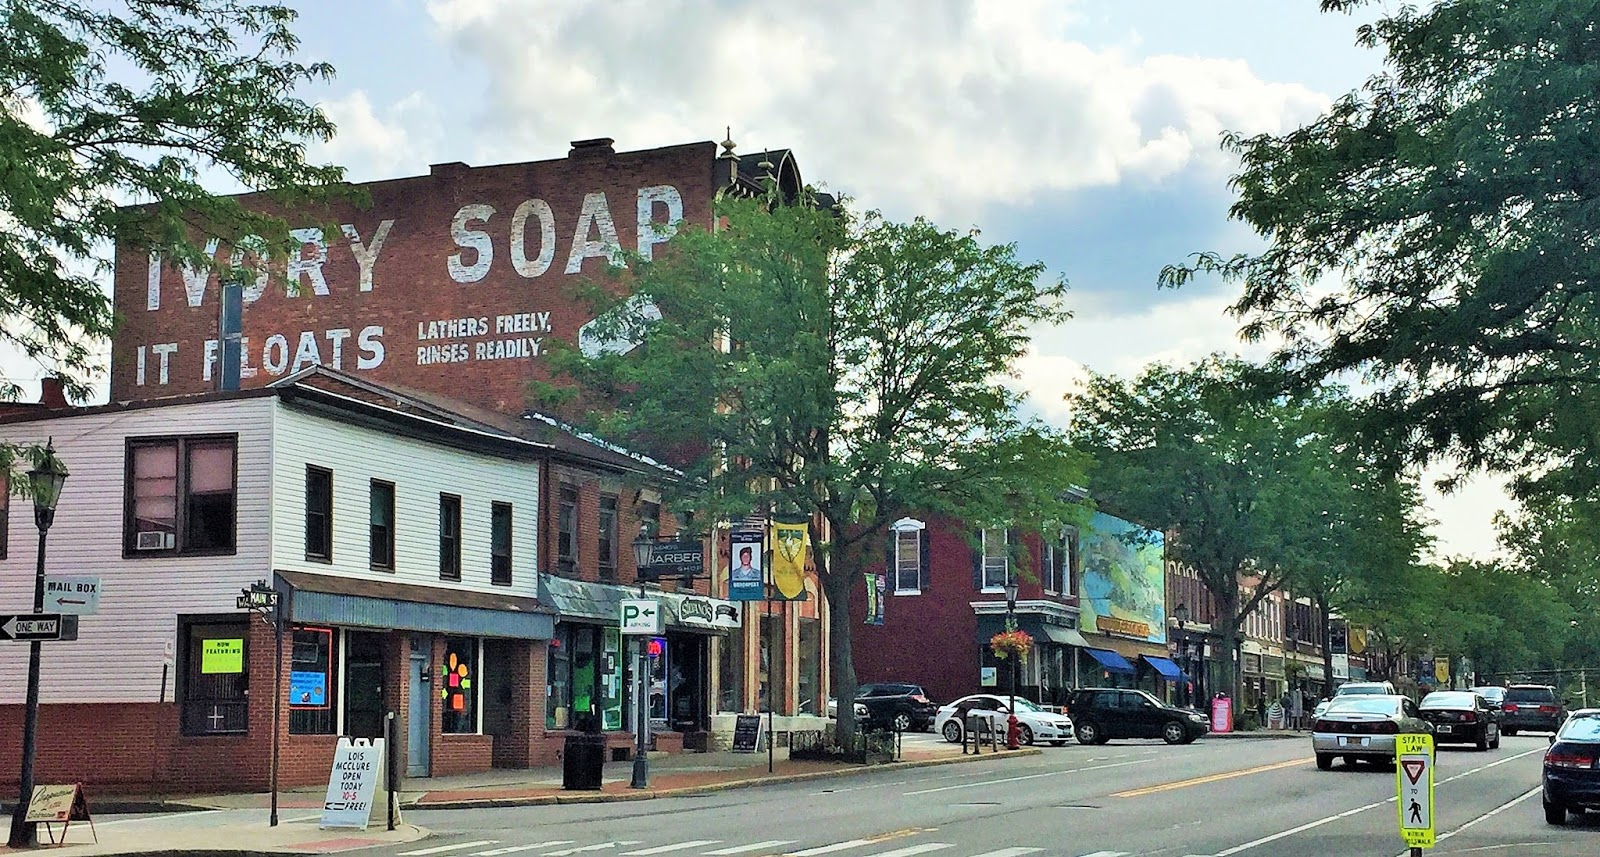 Down the Road: Back in Brockport, New York